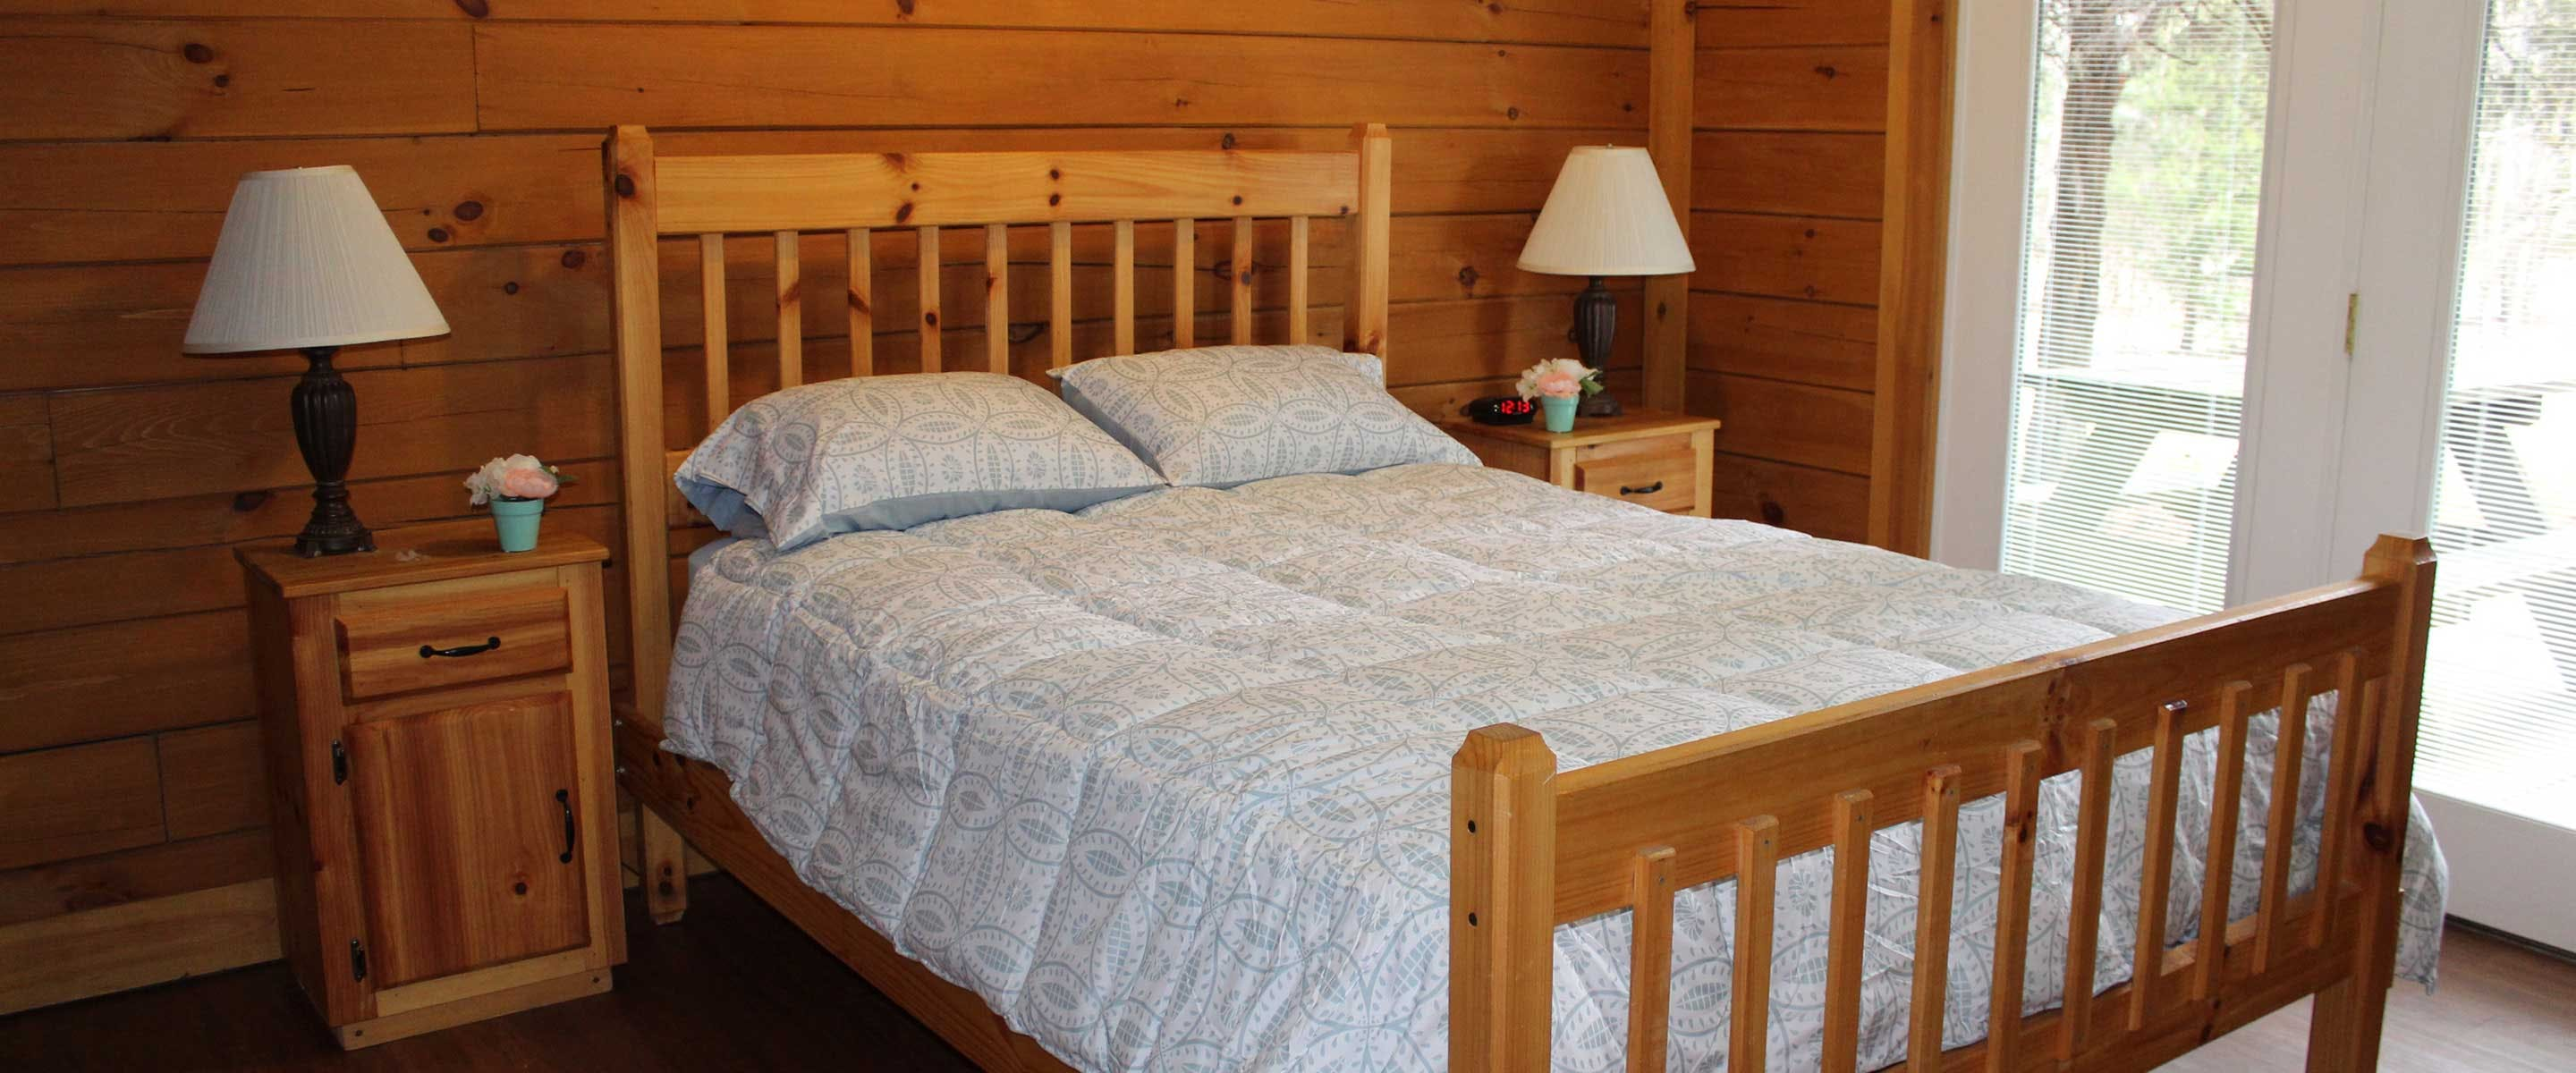 master bed in cabin